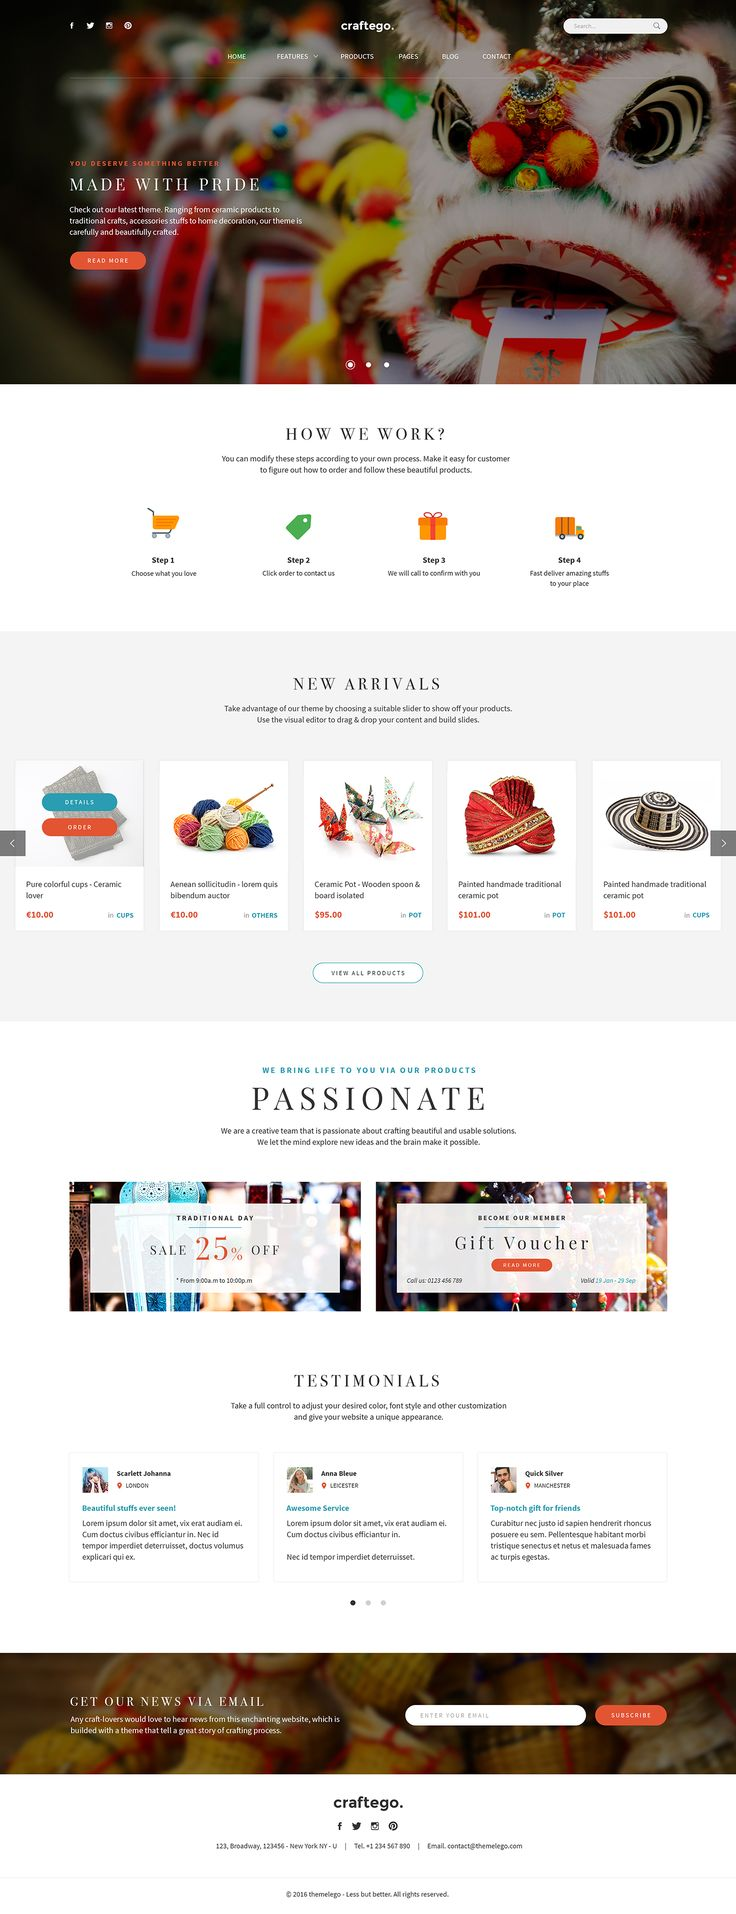 7 best newsletter templates themes images on pinterest email templates newsletter templates. Black Bedroom Furniture Sets. Home Design Ideas